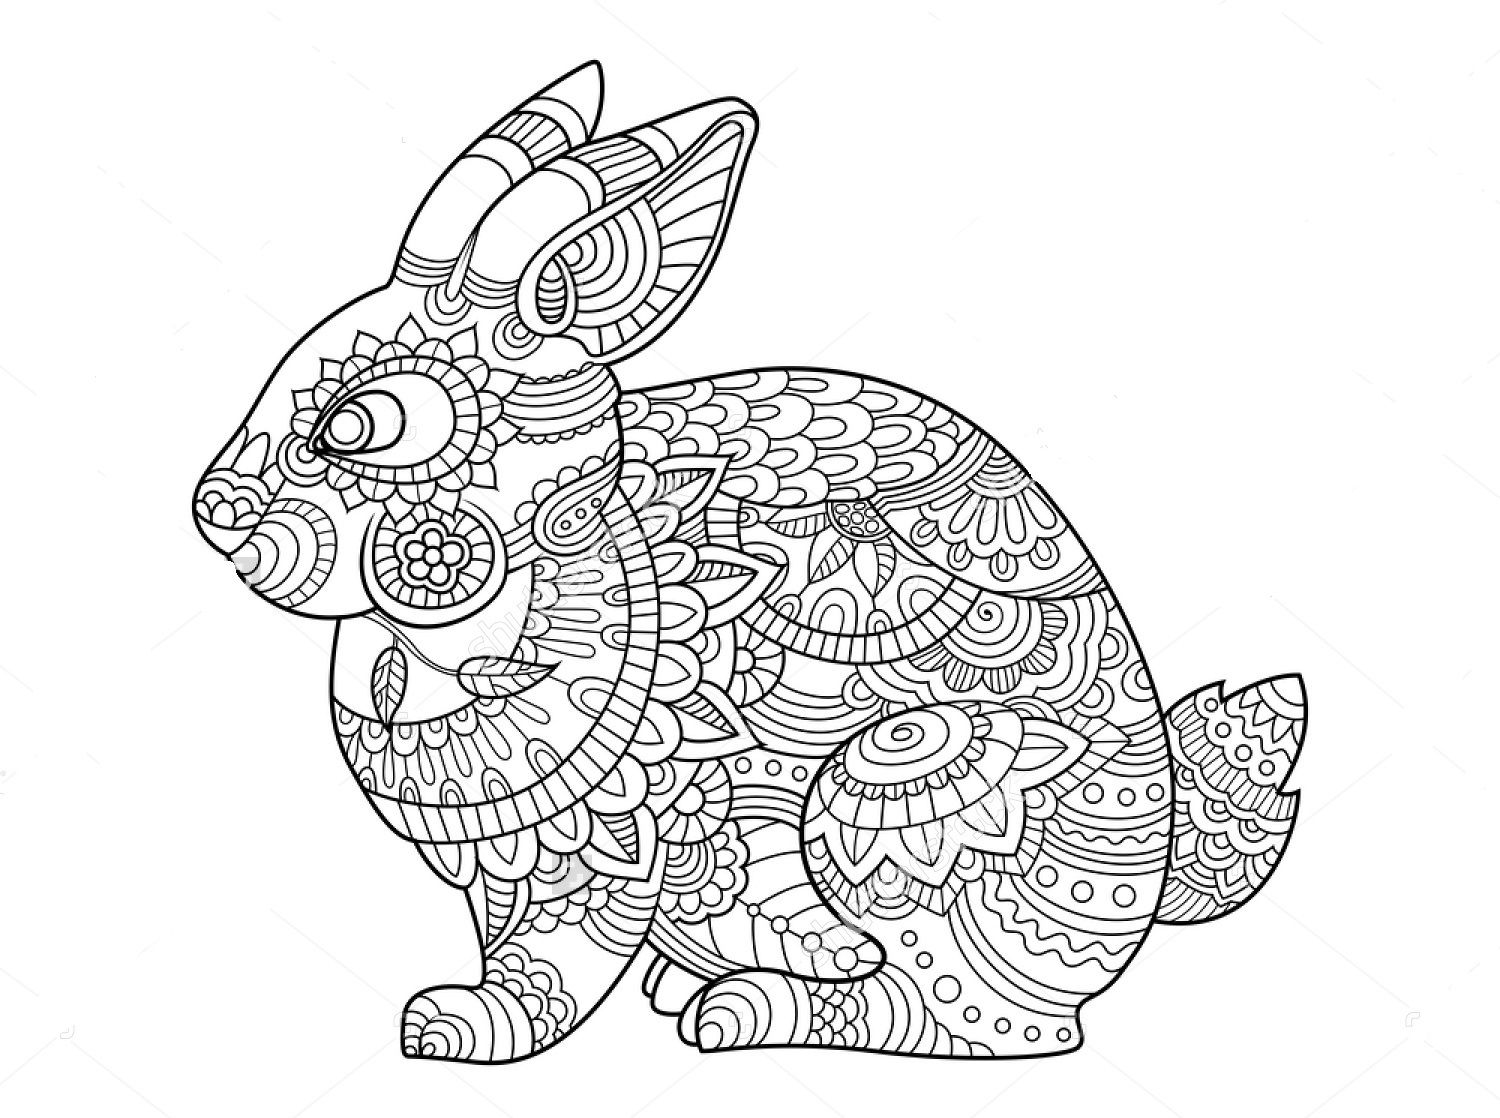 rabbit zentangle coloring page - Zentangle Coloring Pages